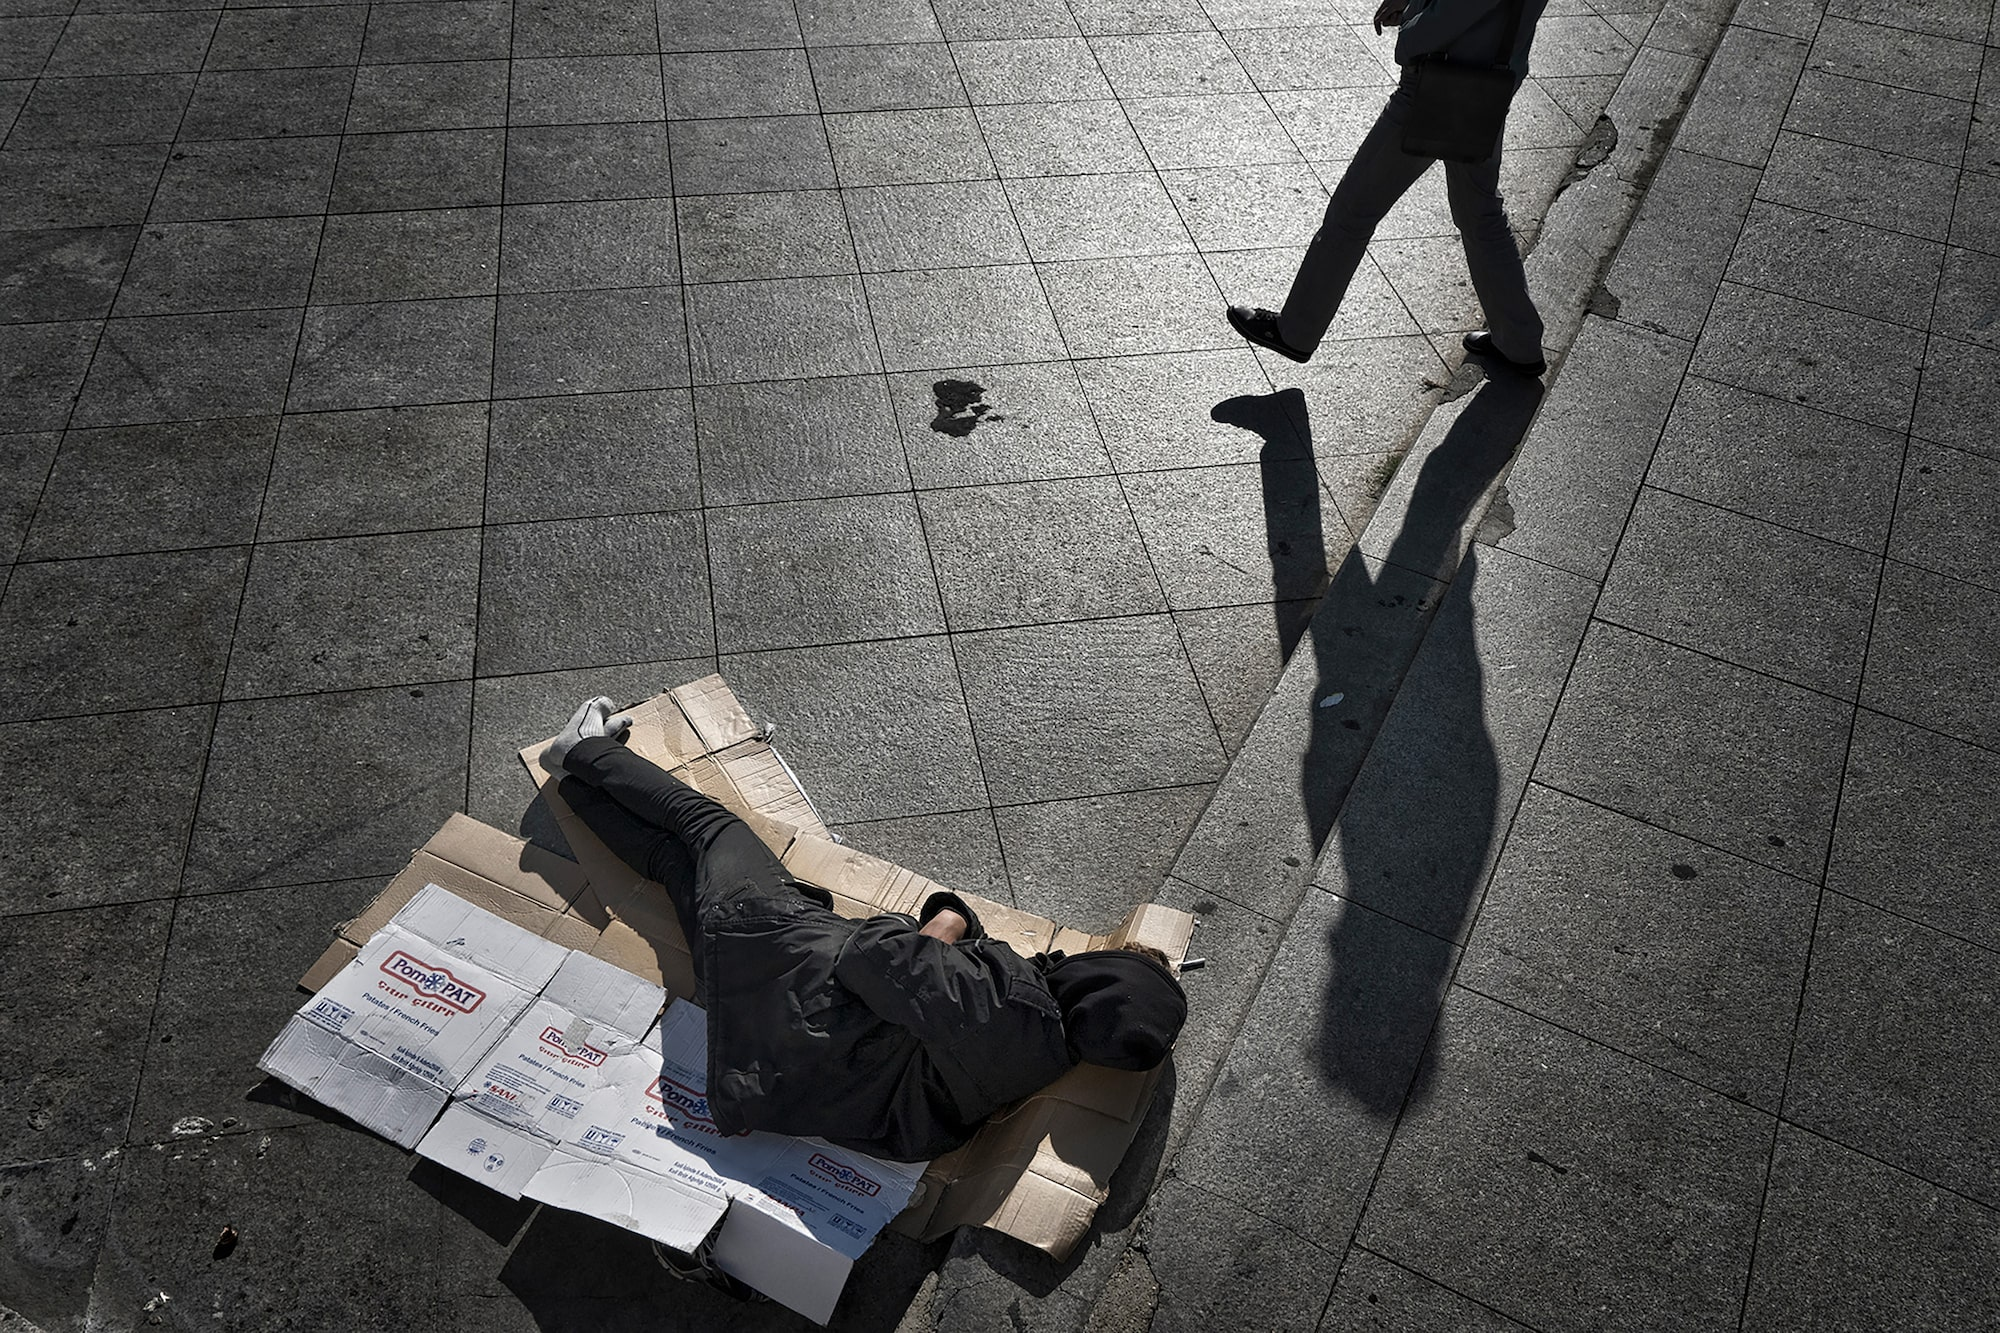 murat pulat sony alpha 7II homeless person lying on a bed of cardboard in the streets of istanbul